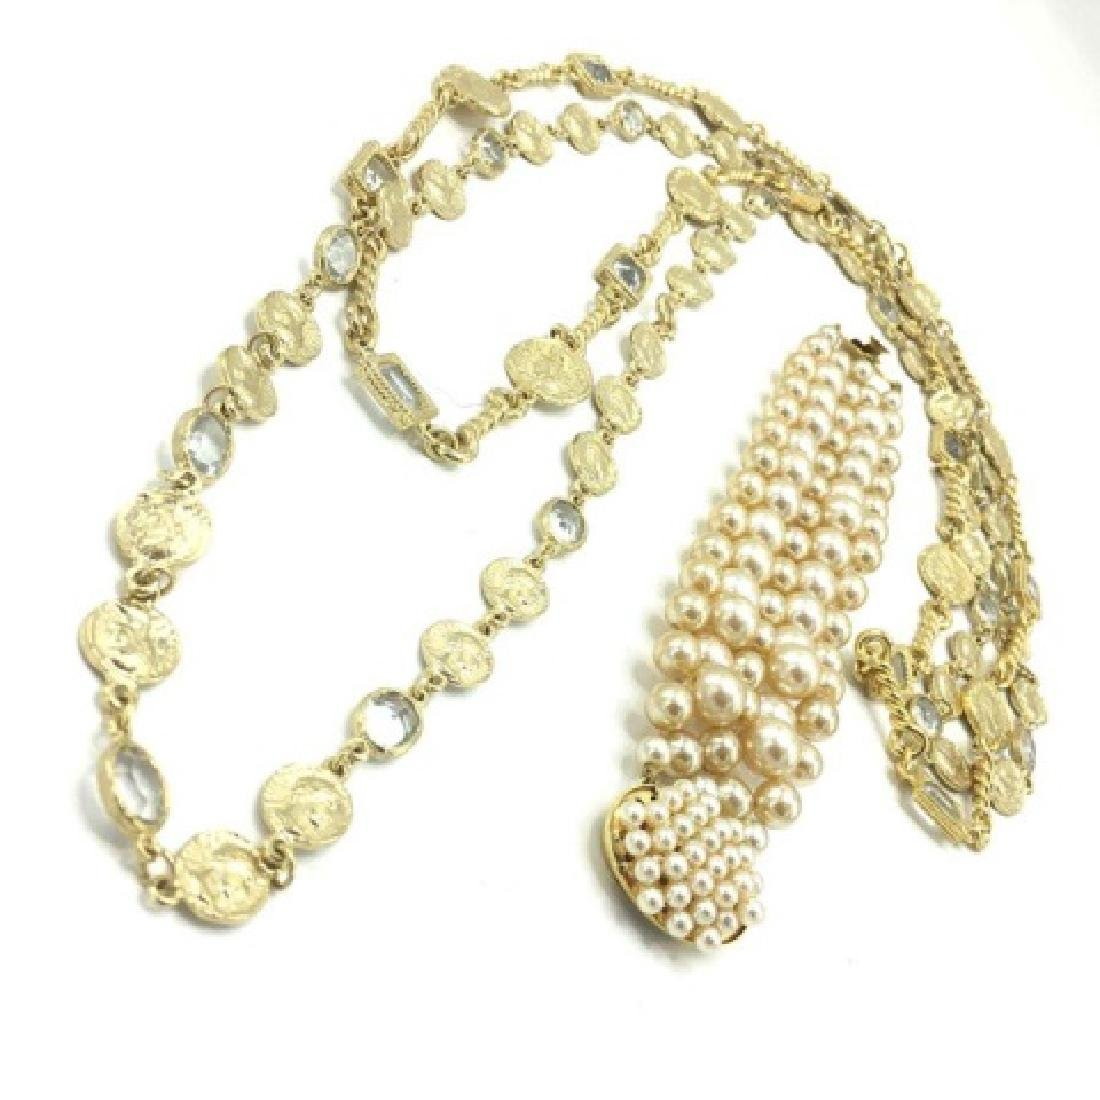 Costume Pearl Bracelet, Crystal & Coin Necklace - 2